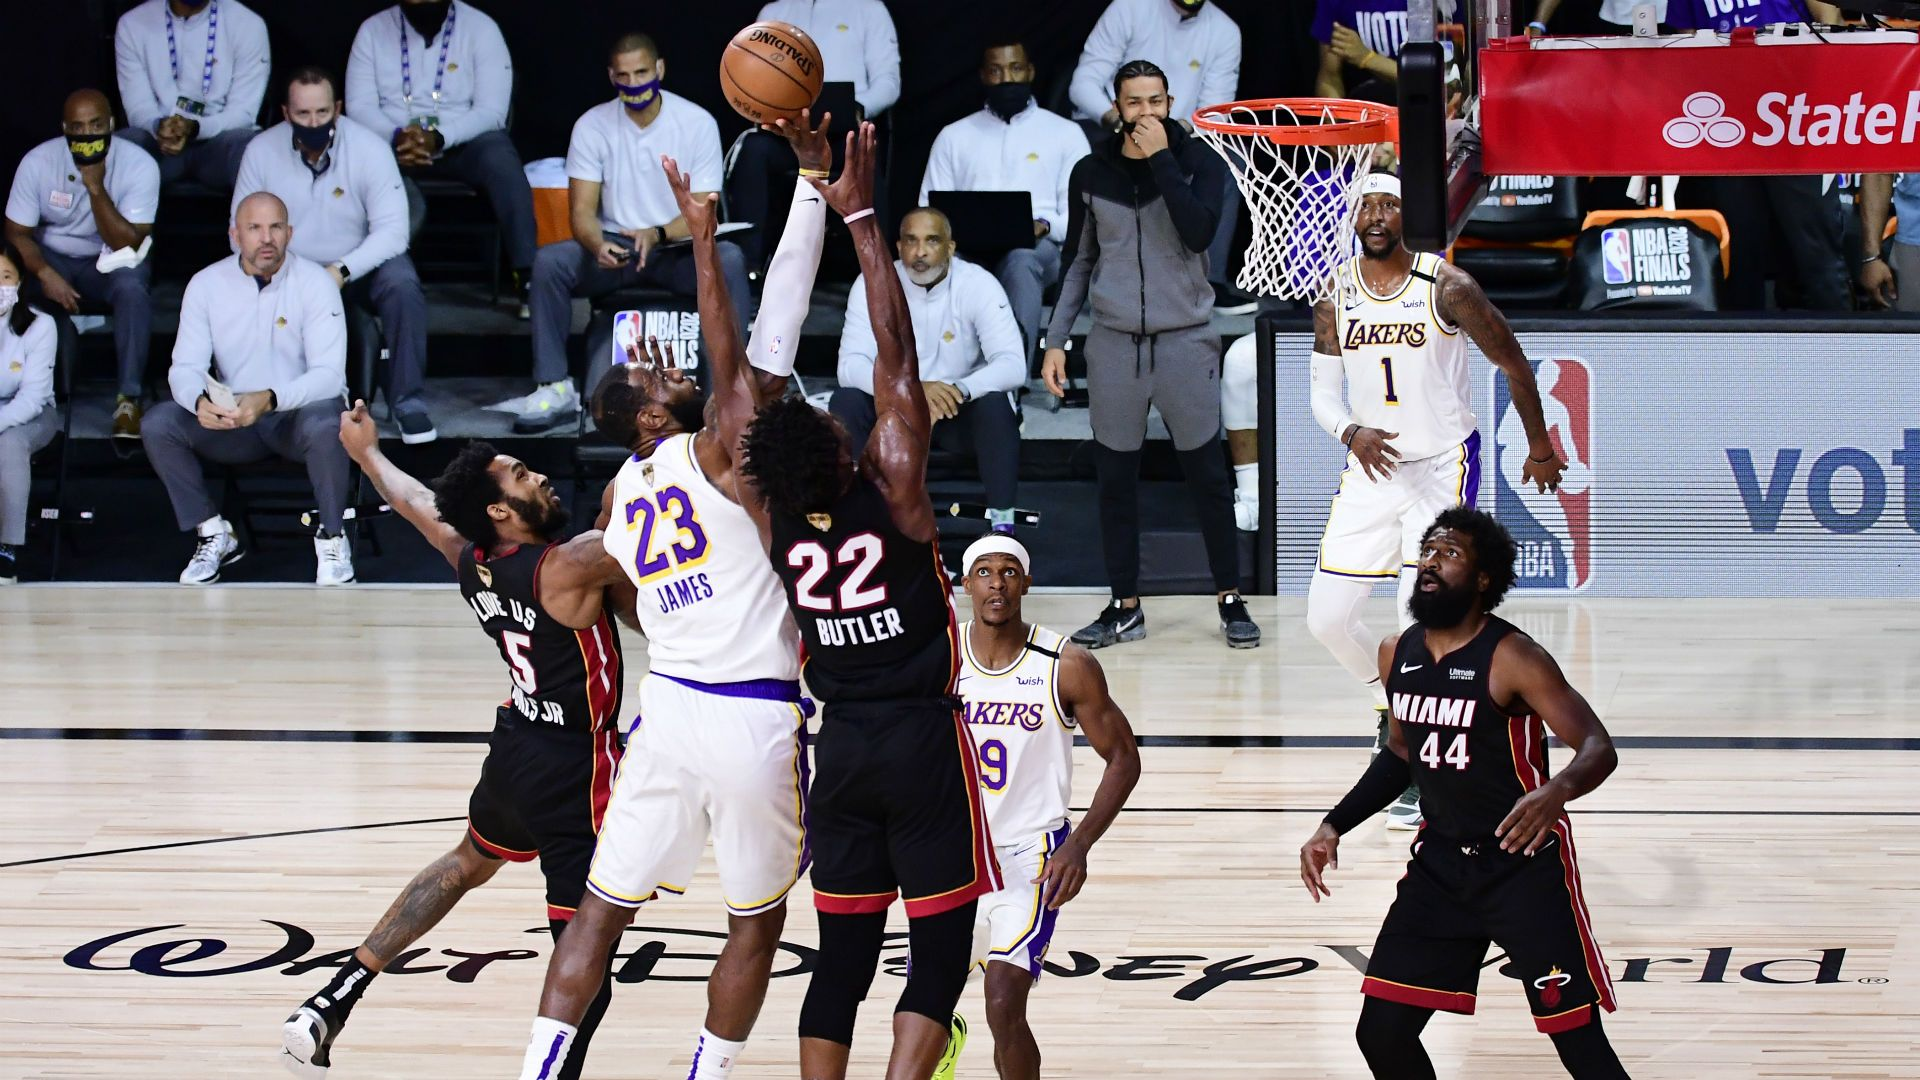 Lakers Vs Heat Live Score Updates Highlights From Game 5 Of The 2020 Nba Finals En 2020 Nba